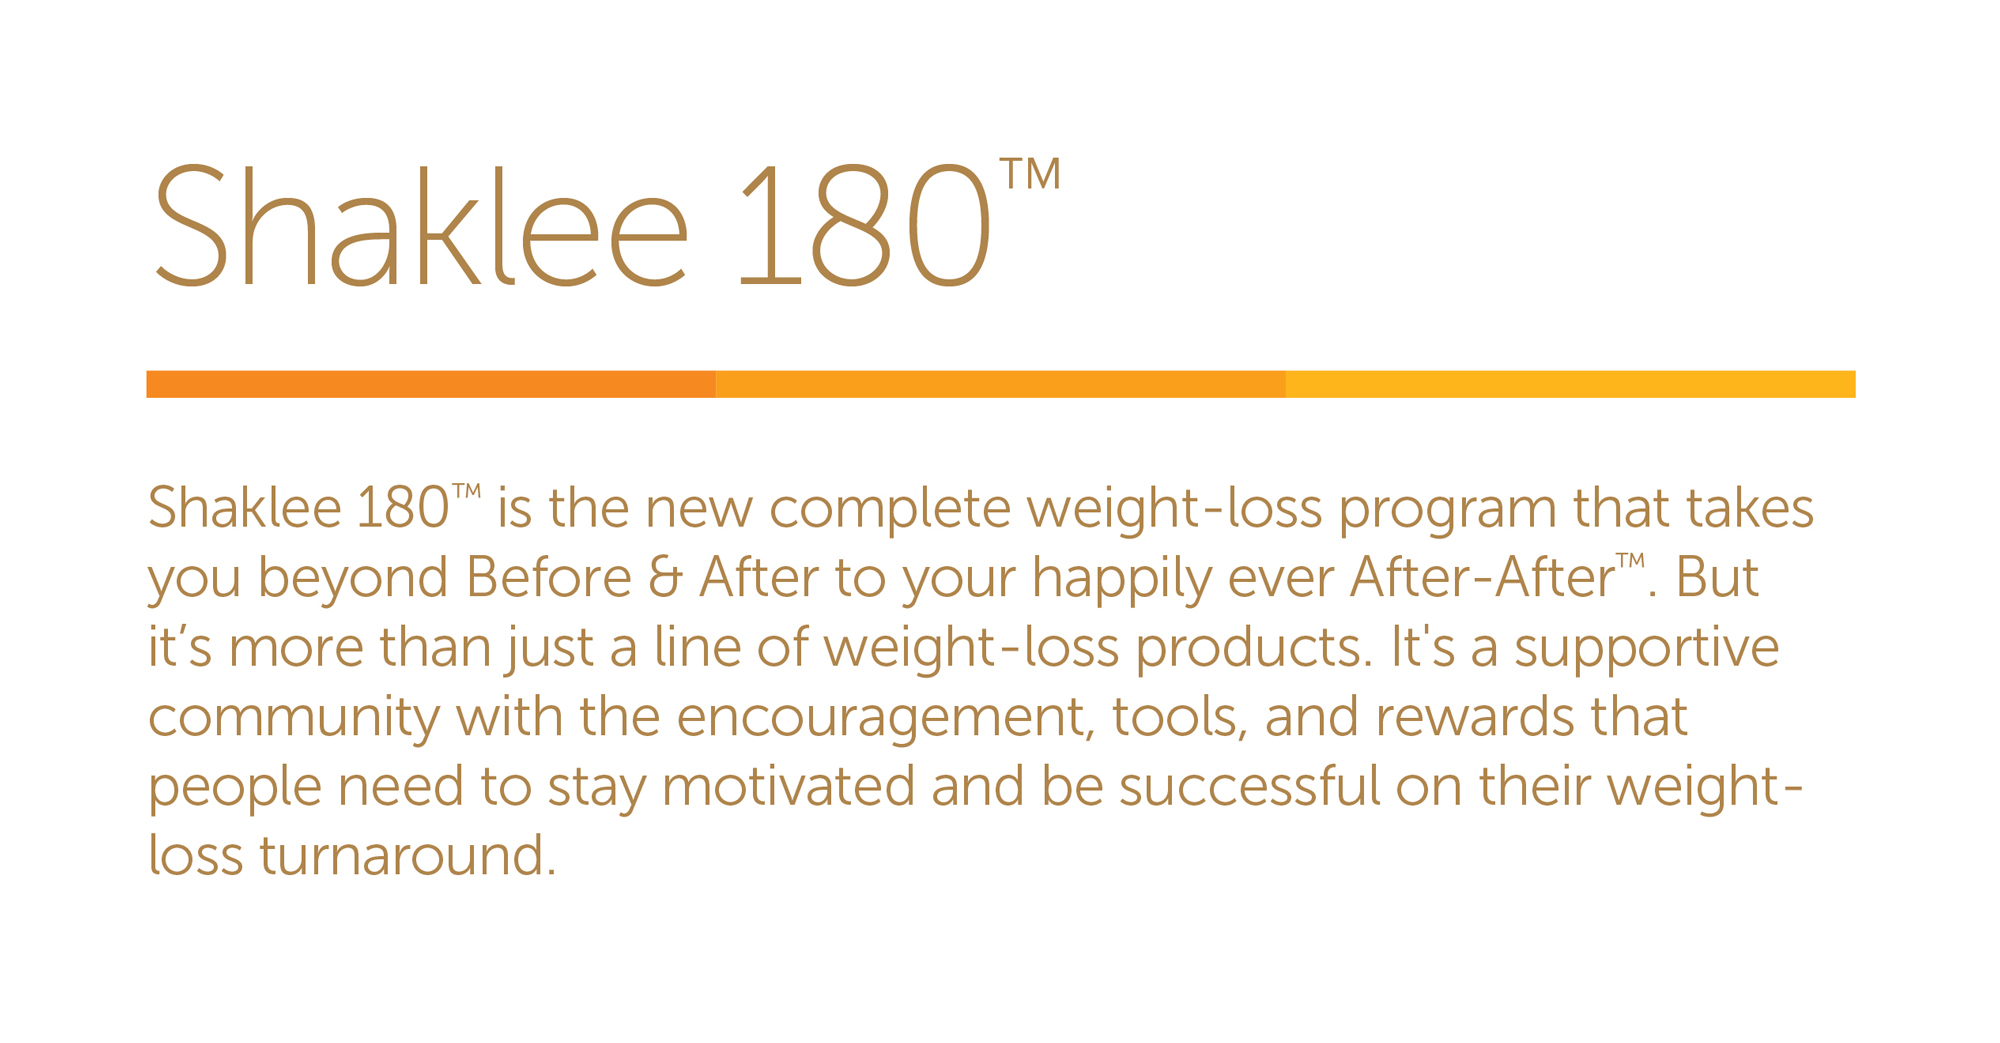 Shaklee180_Style_Guide4